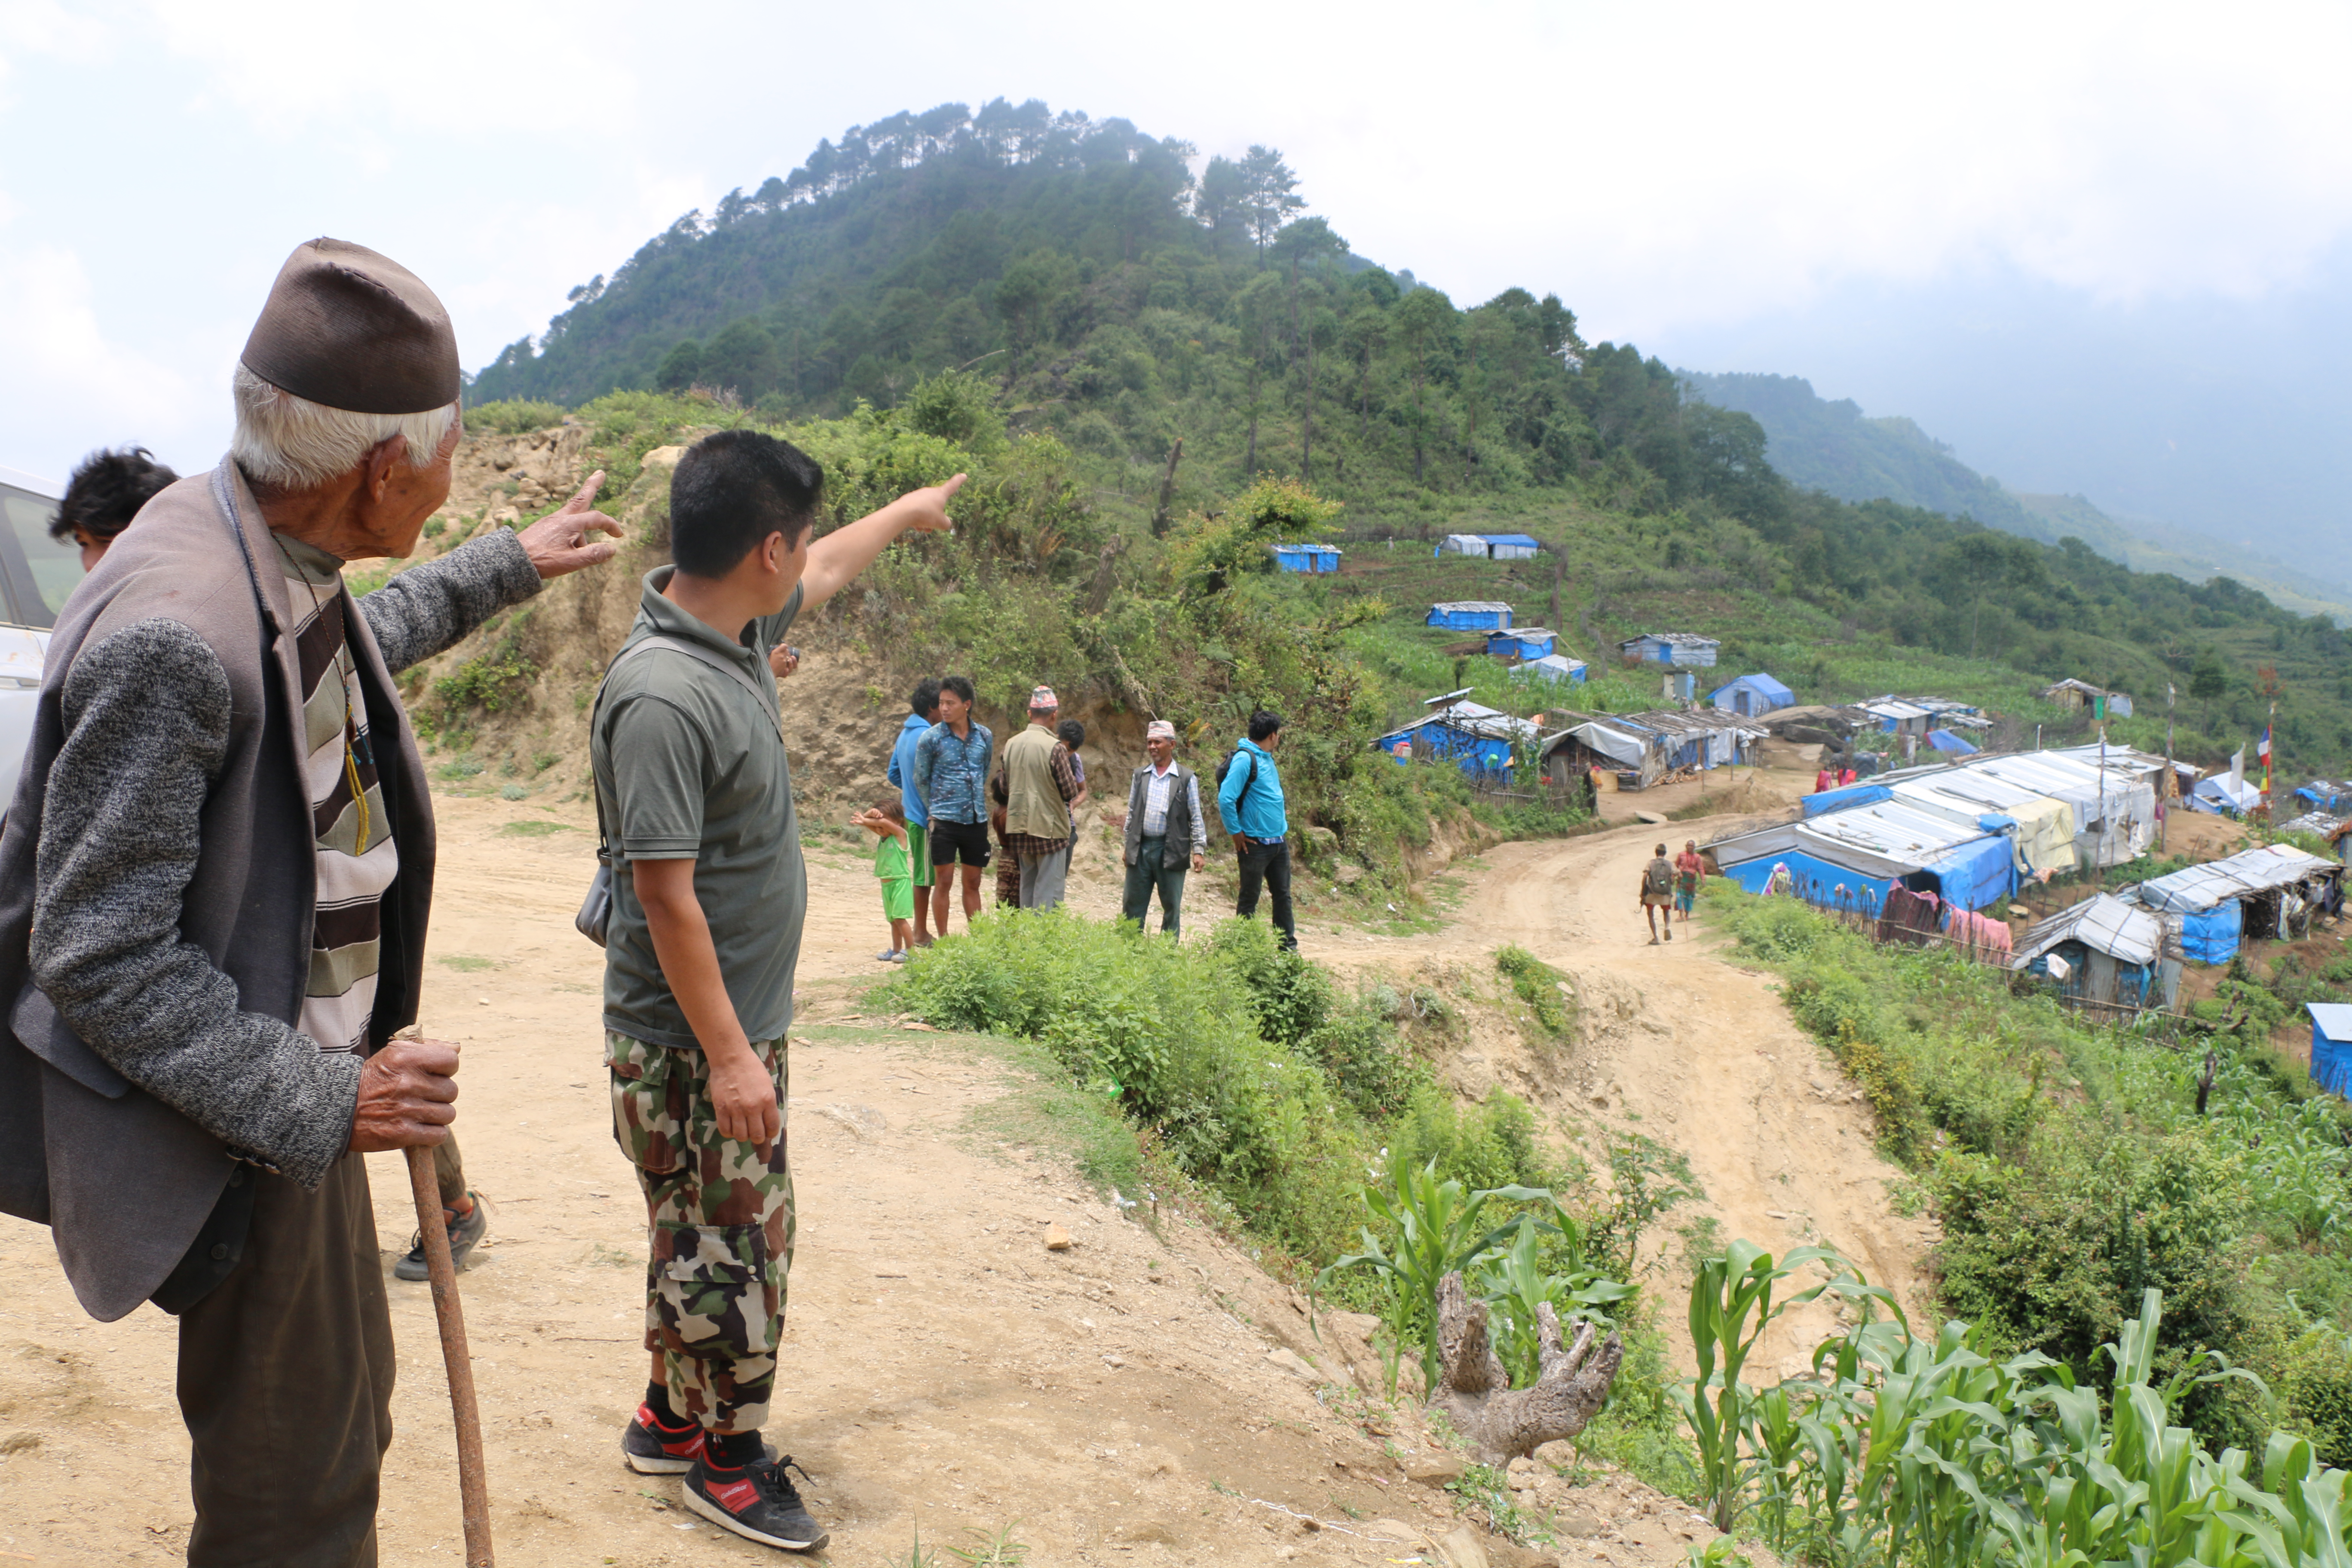 Gyalbu Sherpa (left) and his son, now living in Selang as internally displaced people, pointing towards their place of origin